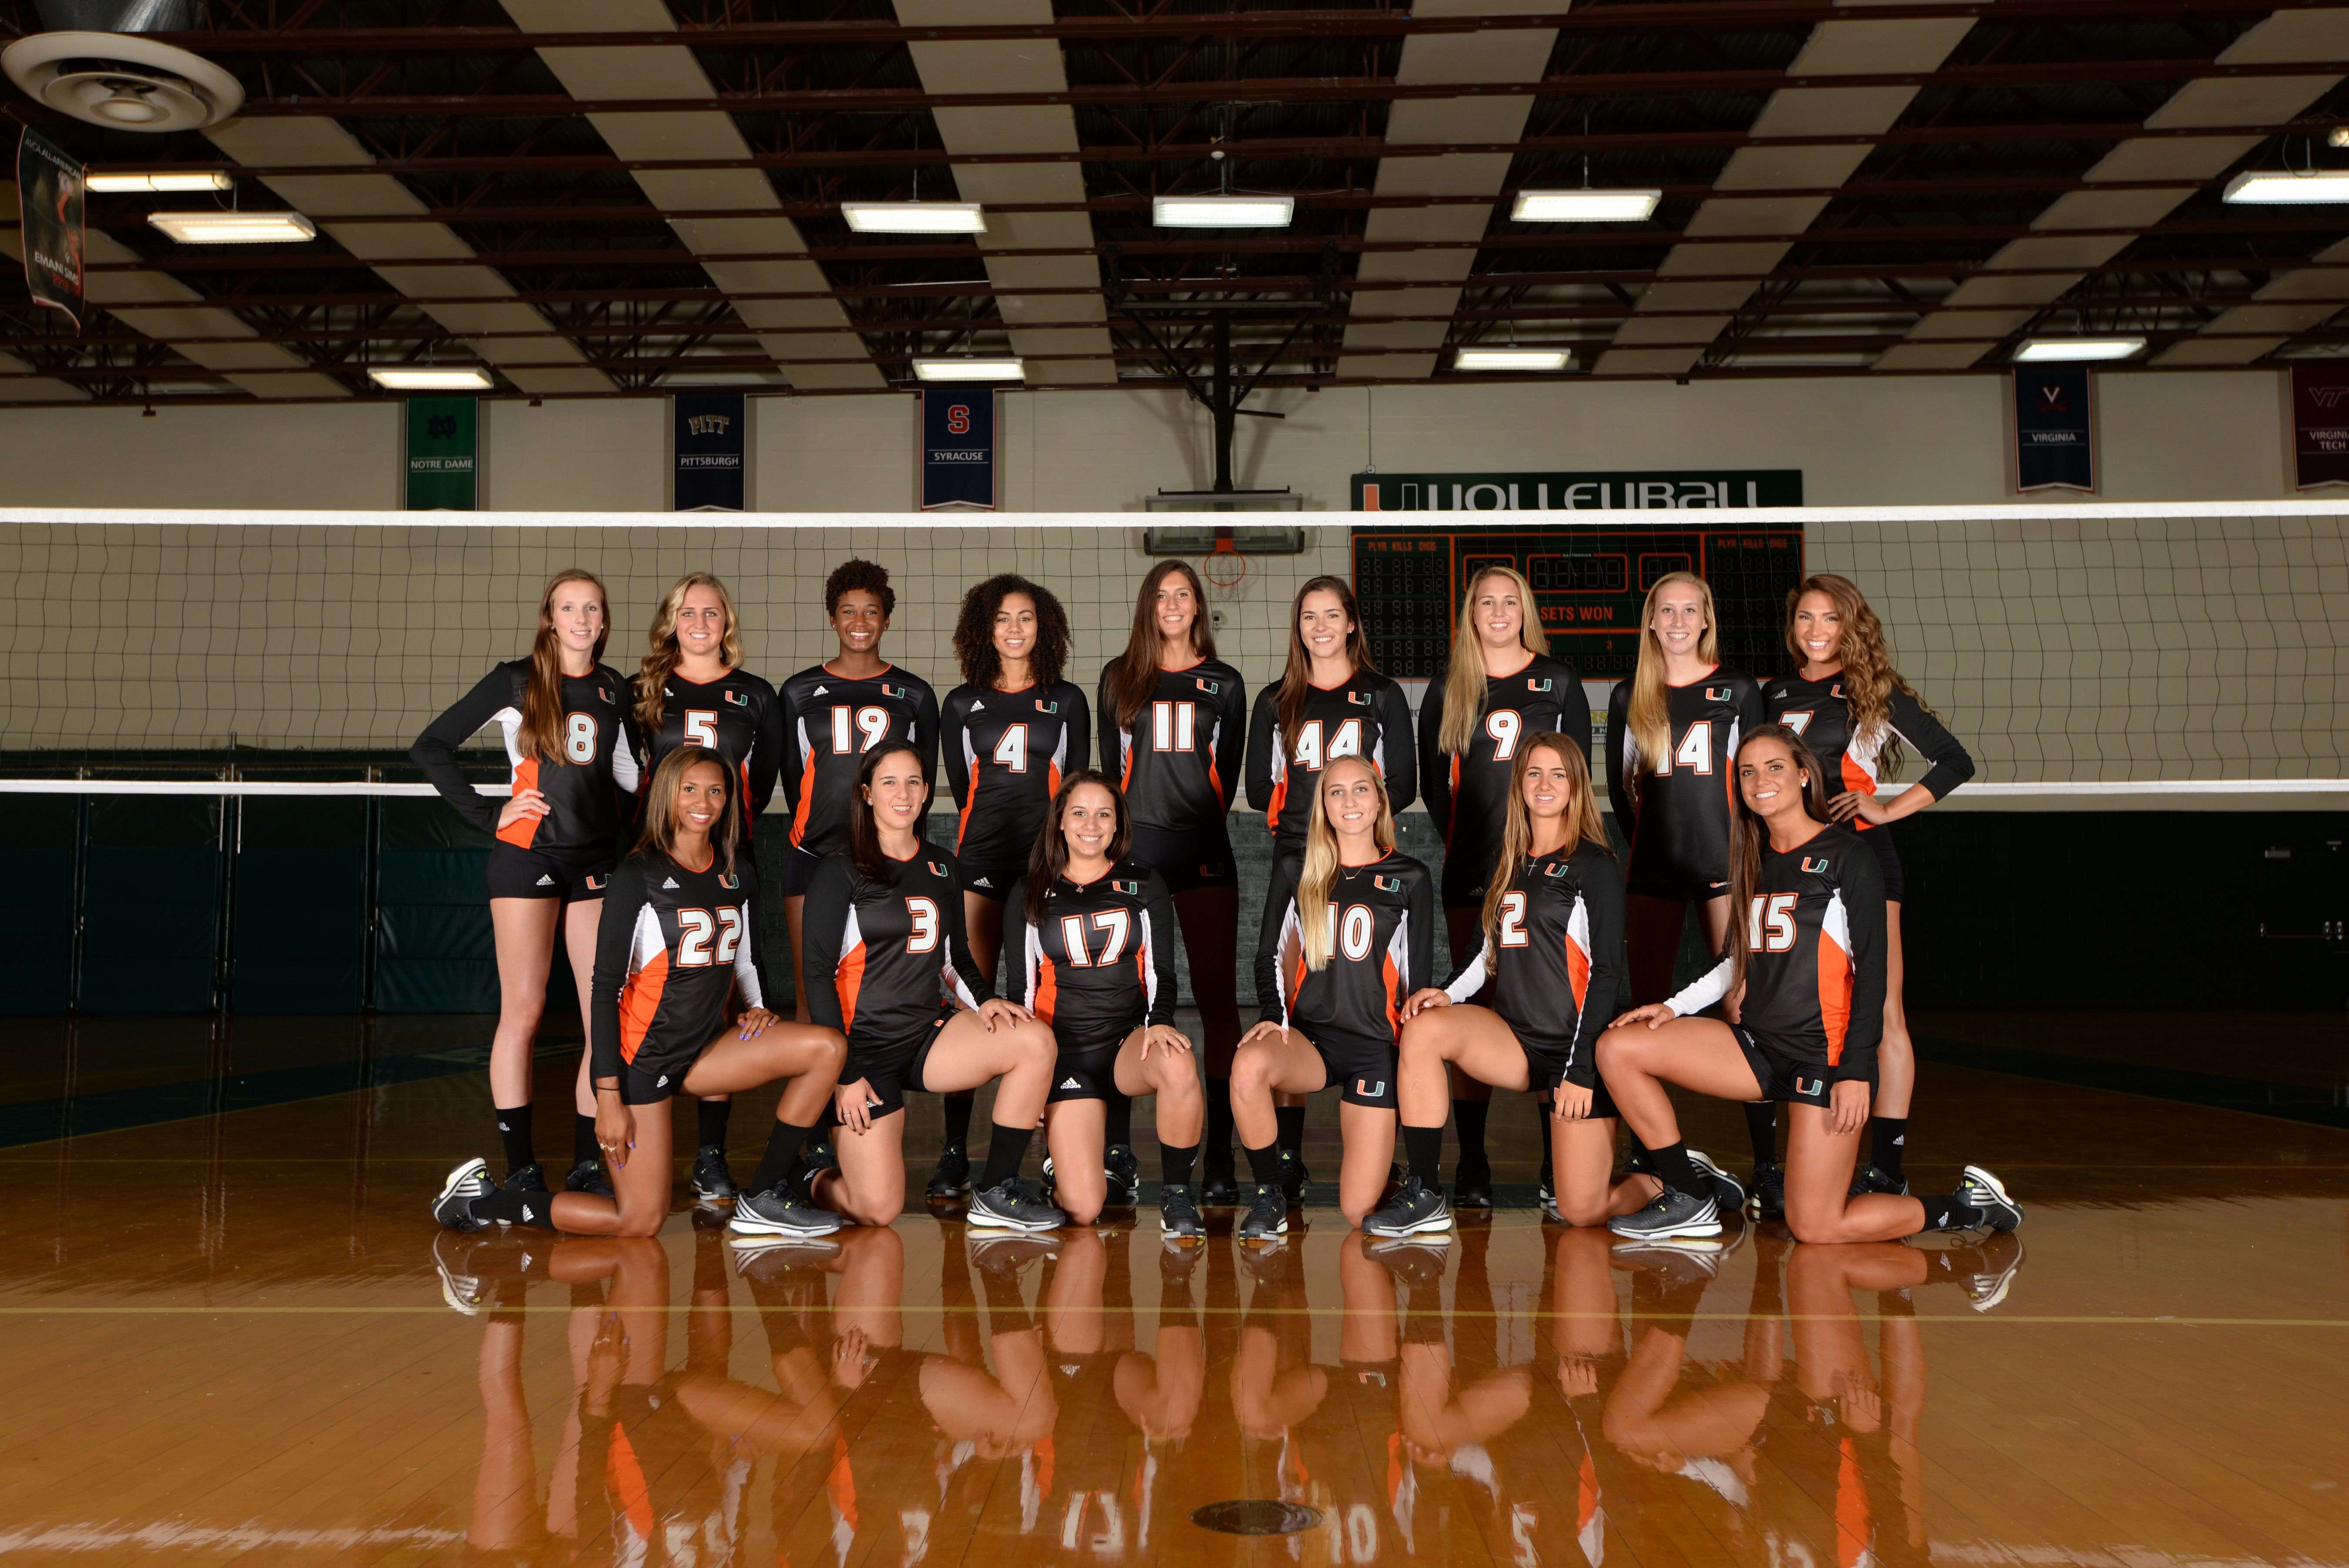 Here S A Look At Your 2015 Volleyball Team In Their New Uniforms From Adidas Volleyball Team Volleyball Uniform